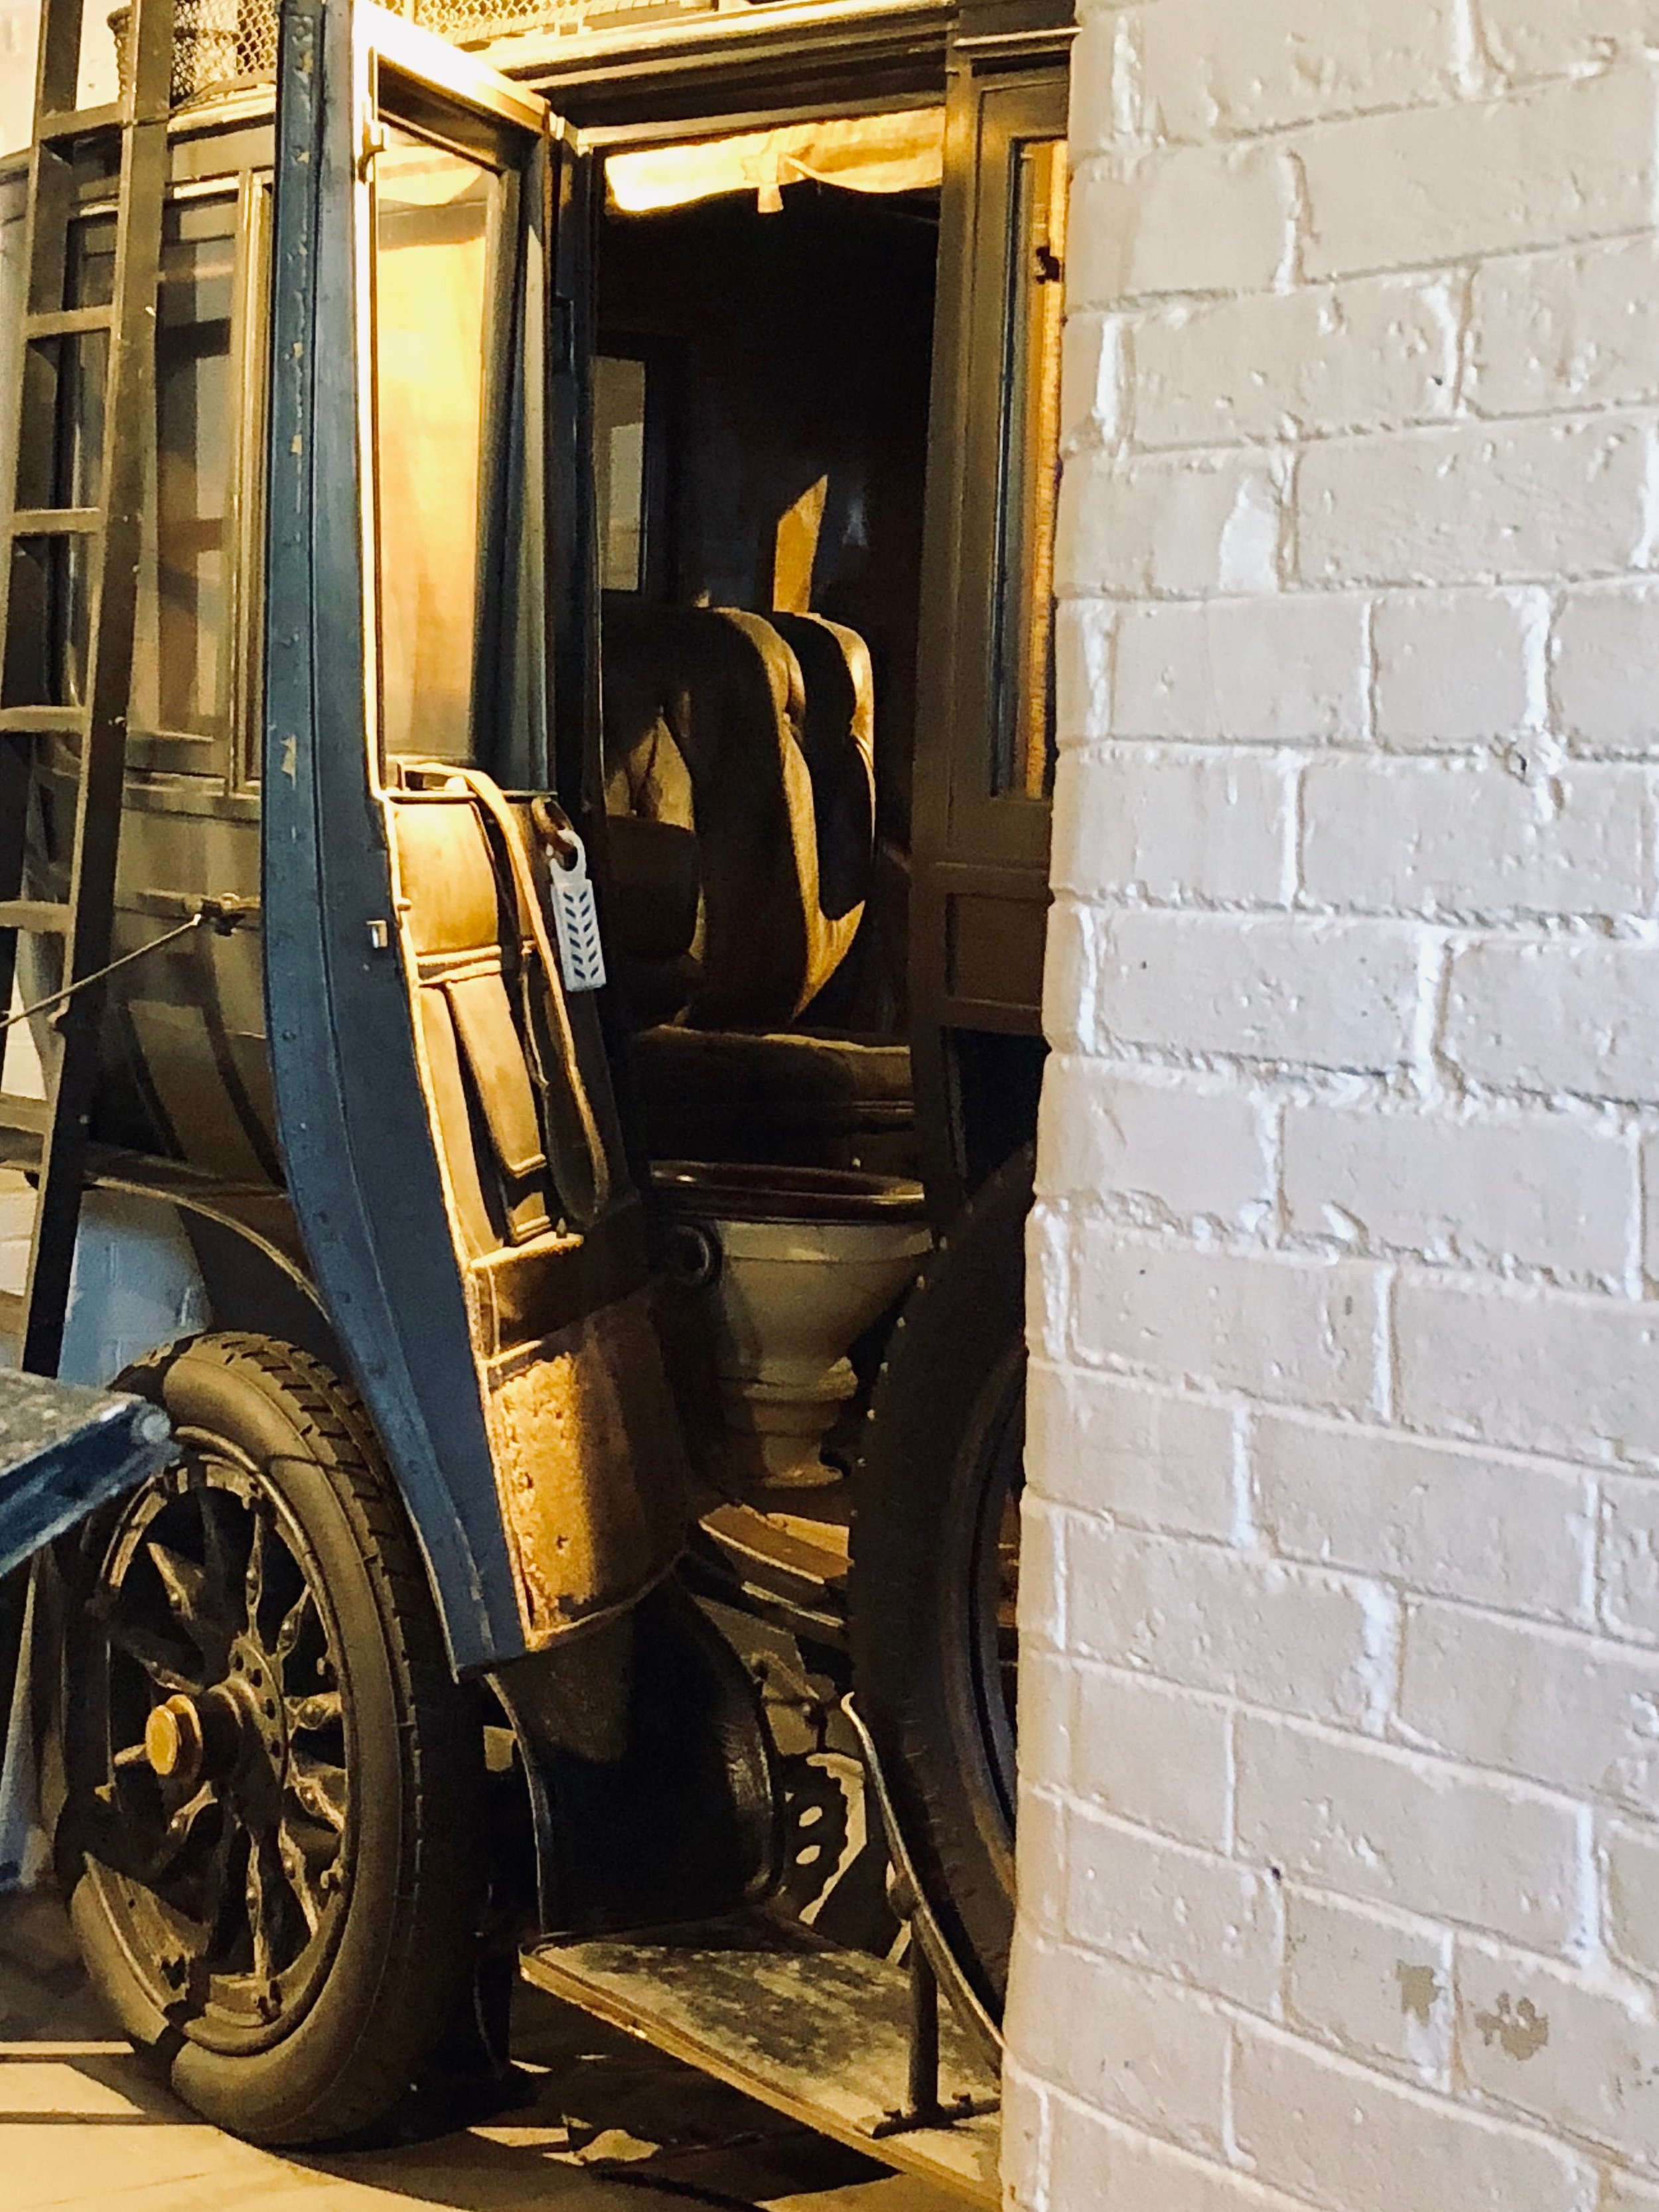 Yes. That's a toilet in that 1906 Charron-Girodot-Voight. I particularly like the anachronistic but apropos air freshener clipped to the door.